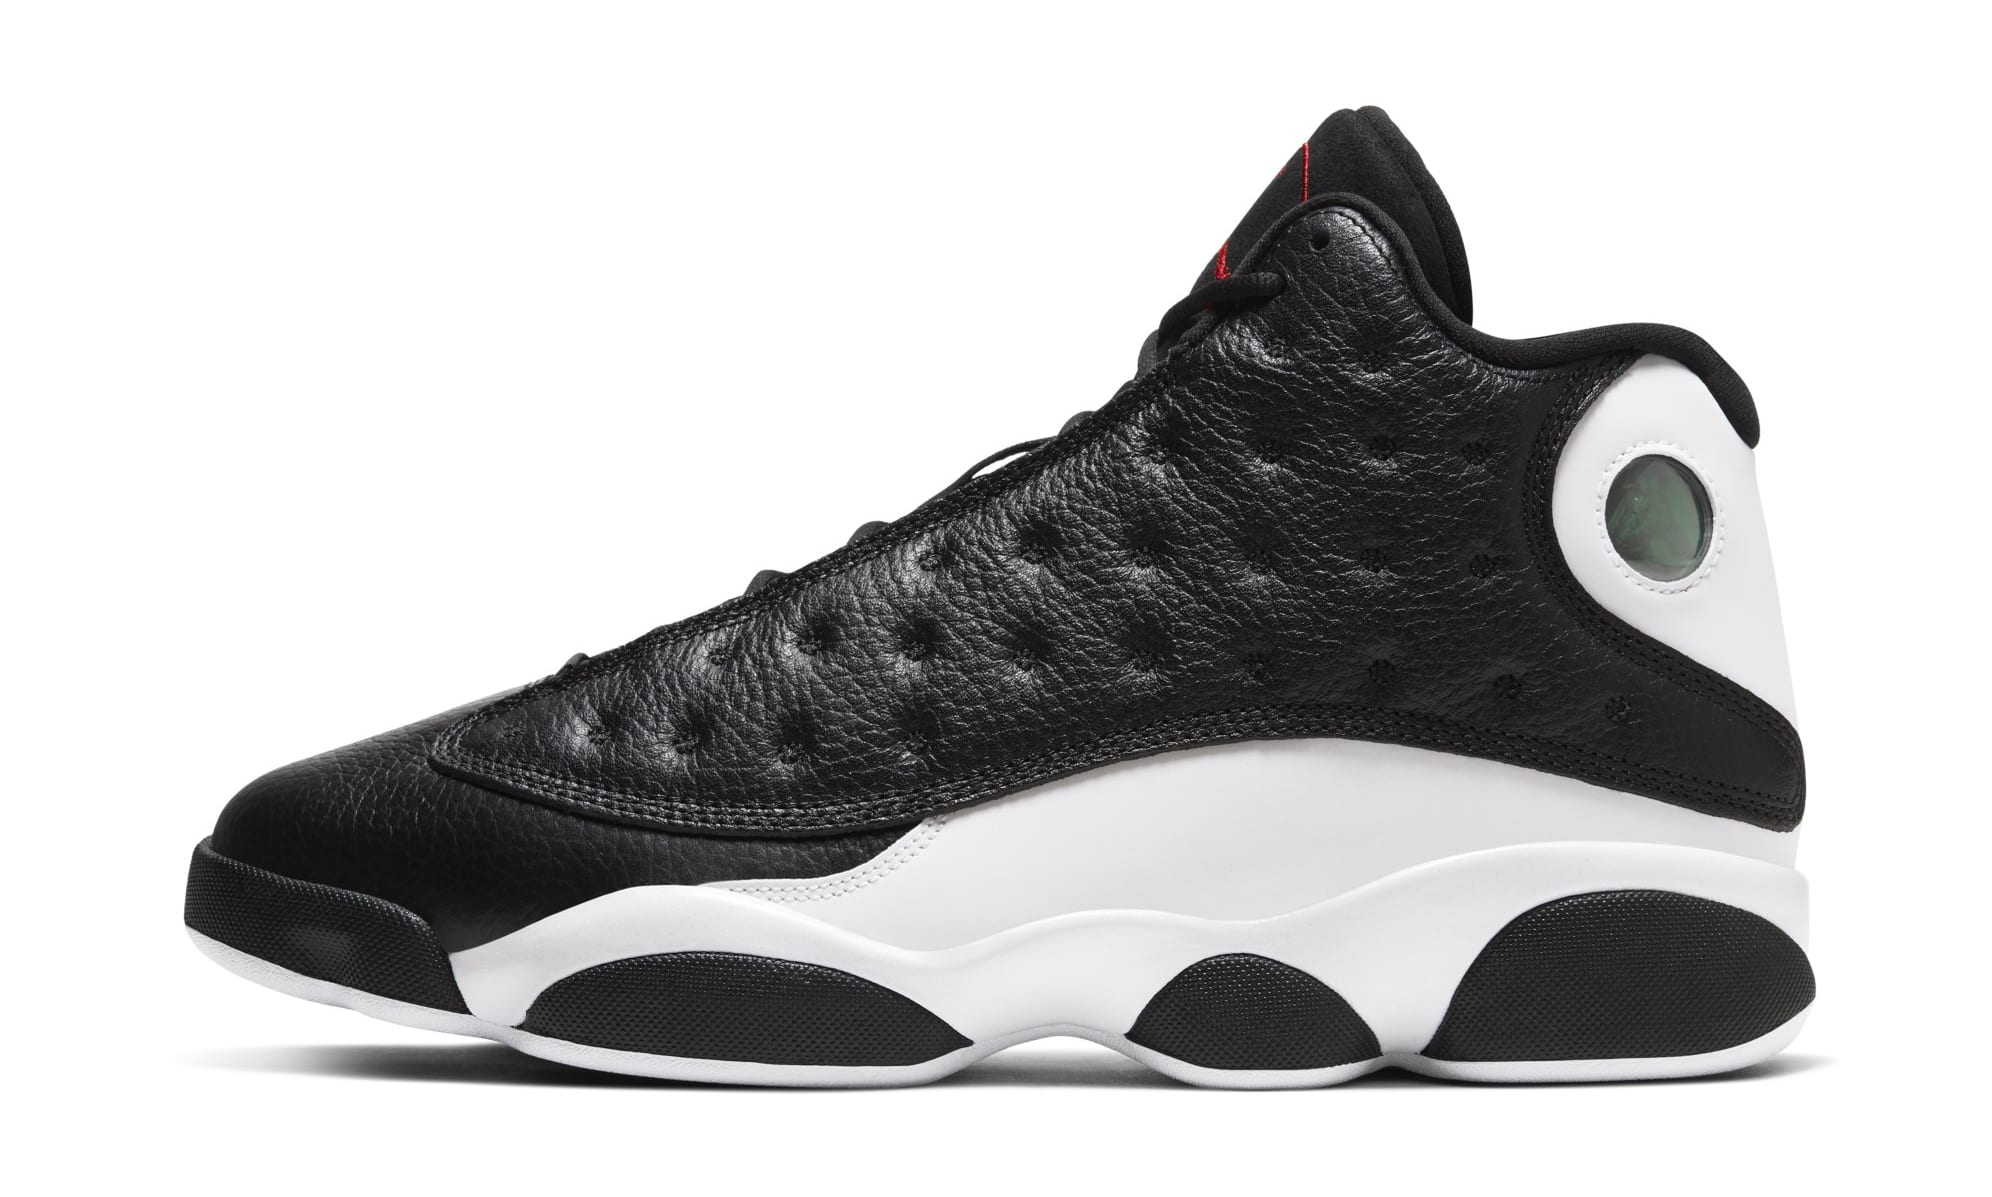 Air Jordan 13 'Reverse He Got Game' 414571-061 (Lateral)